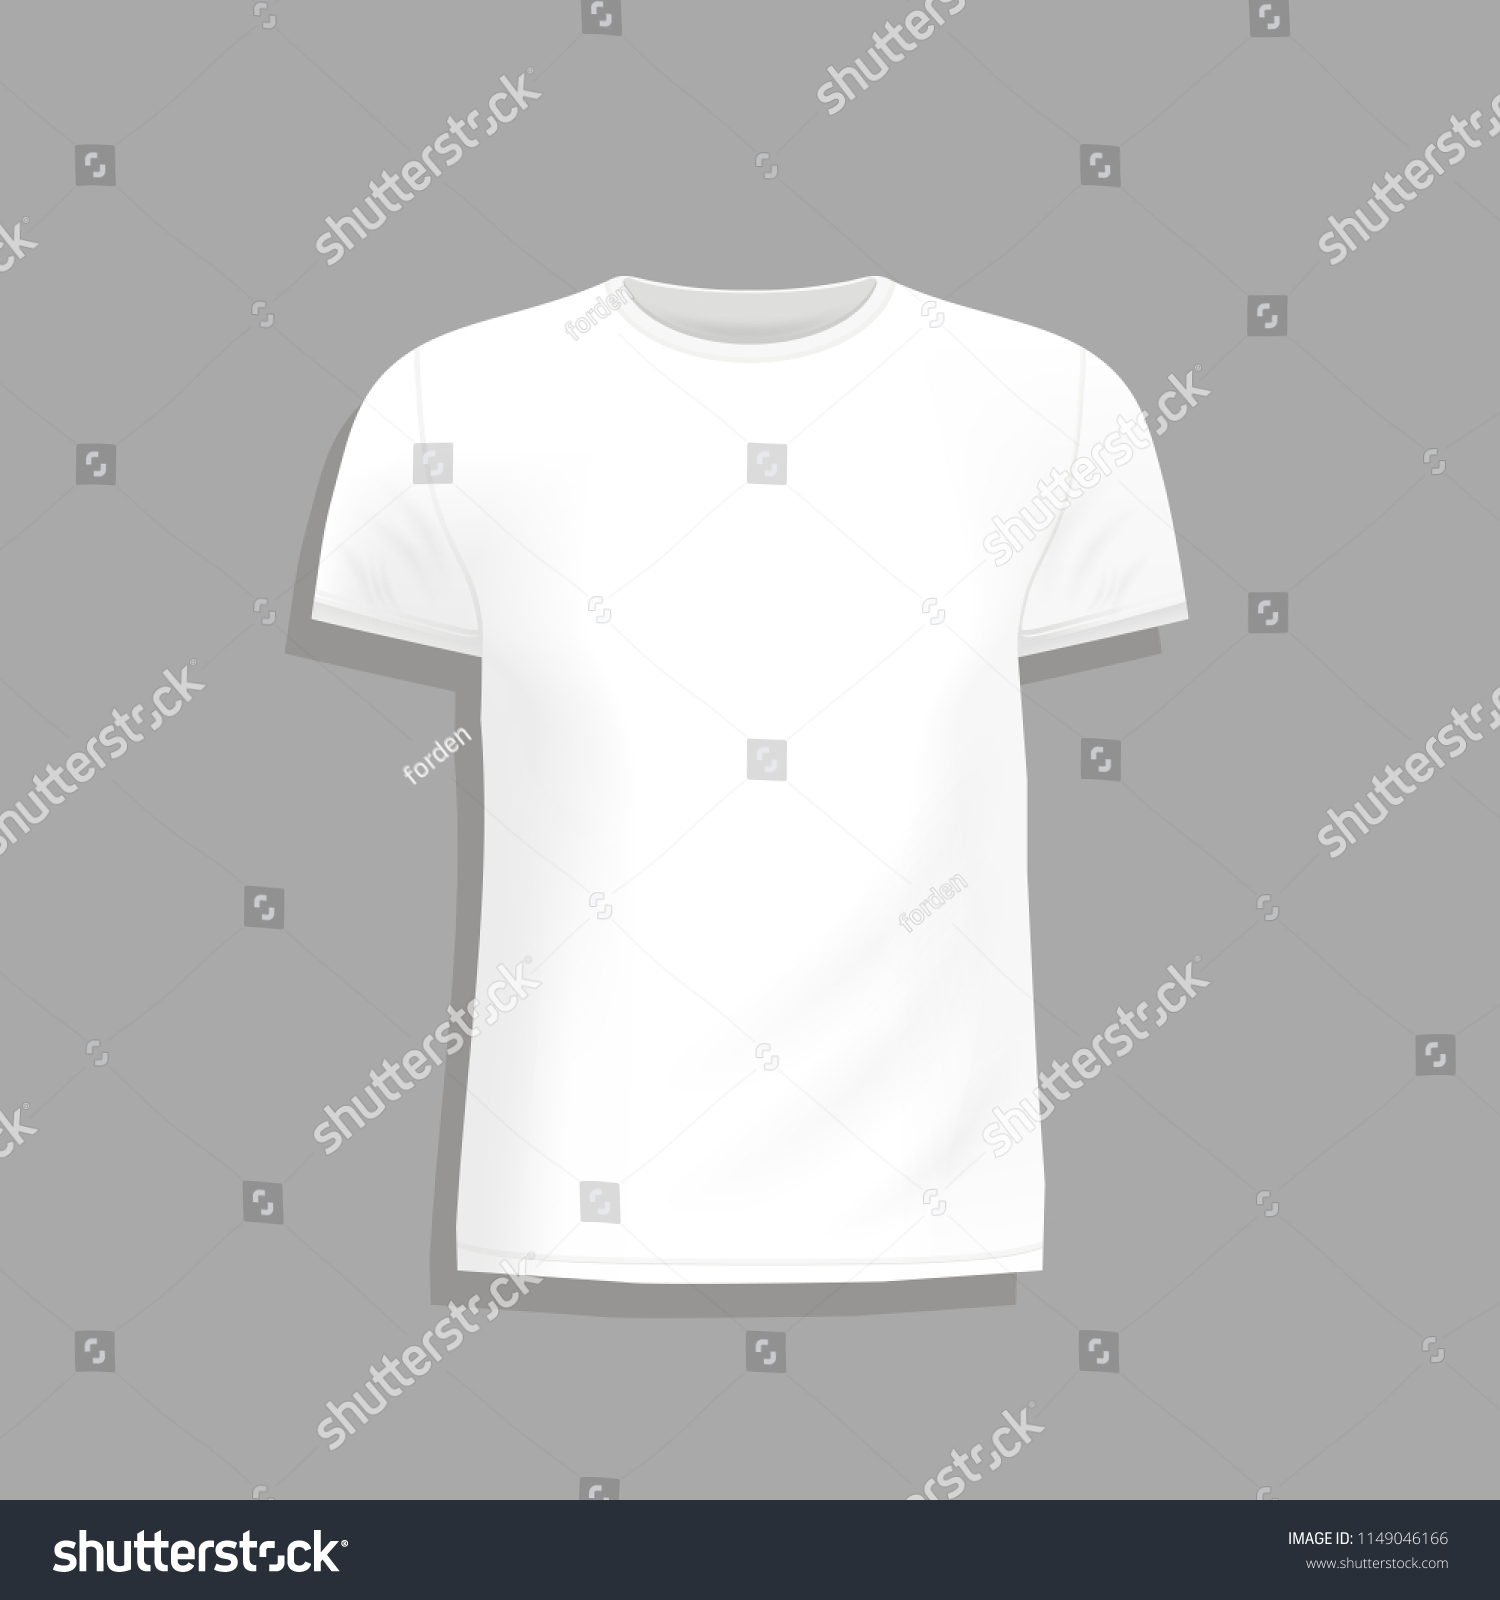 Mens T Shirt Design Template On Gray Background Mock Up Tshirt For